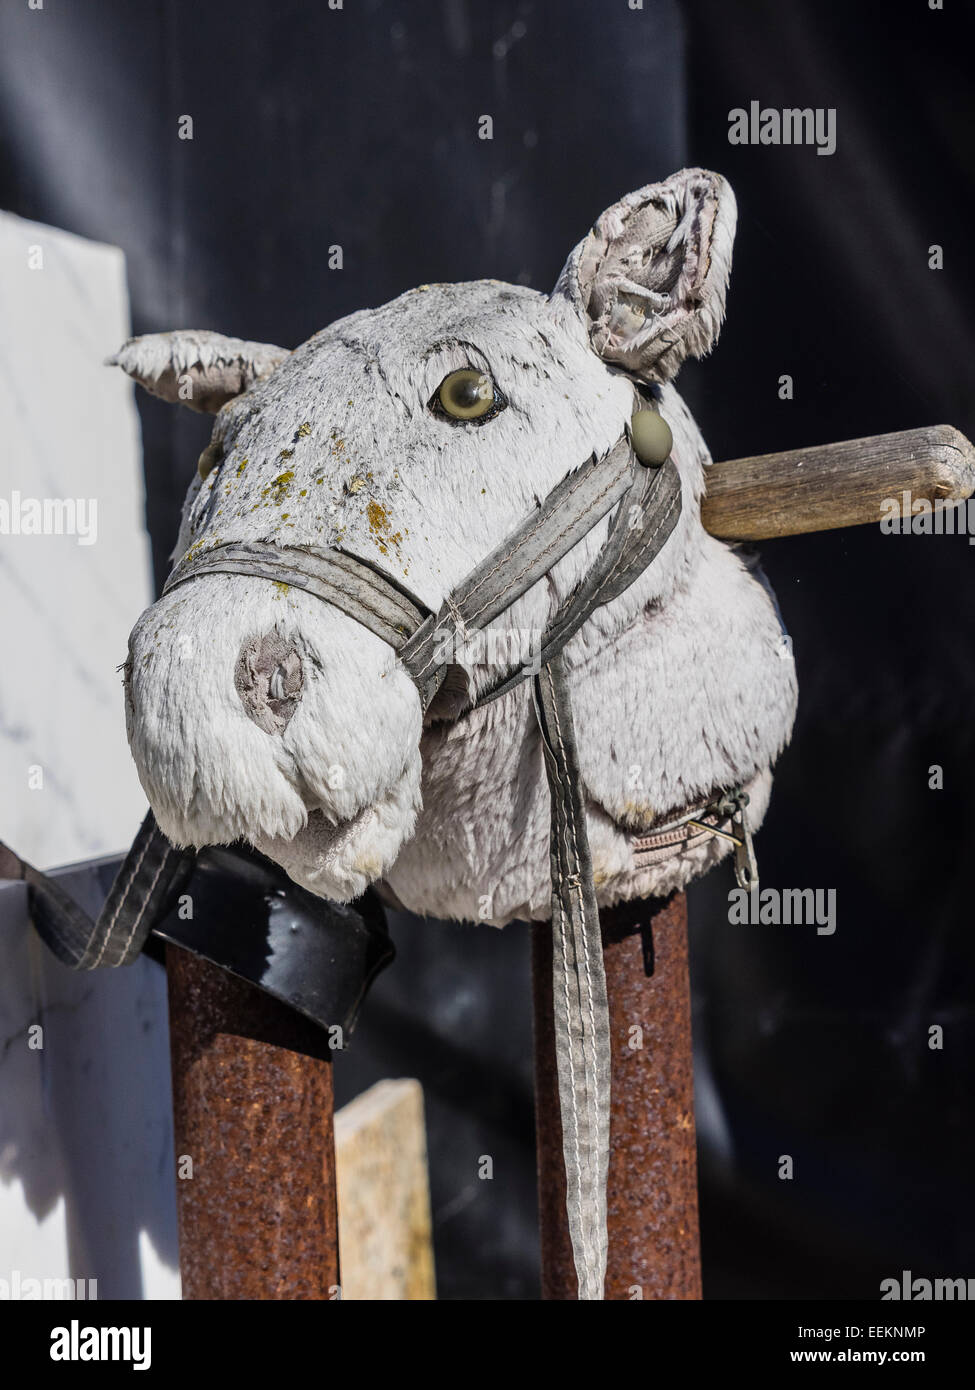 A fake horse head made from what appears to be old white mop material is sitting on a rusted pole. - Stock Image